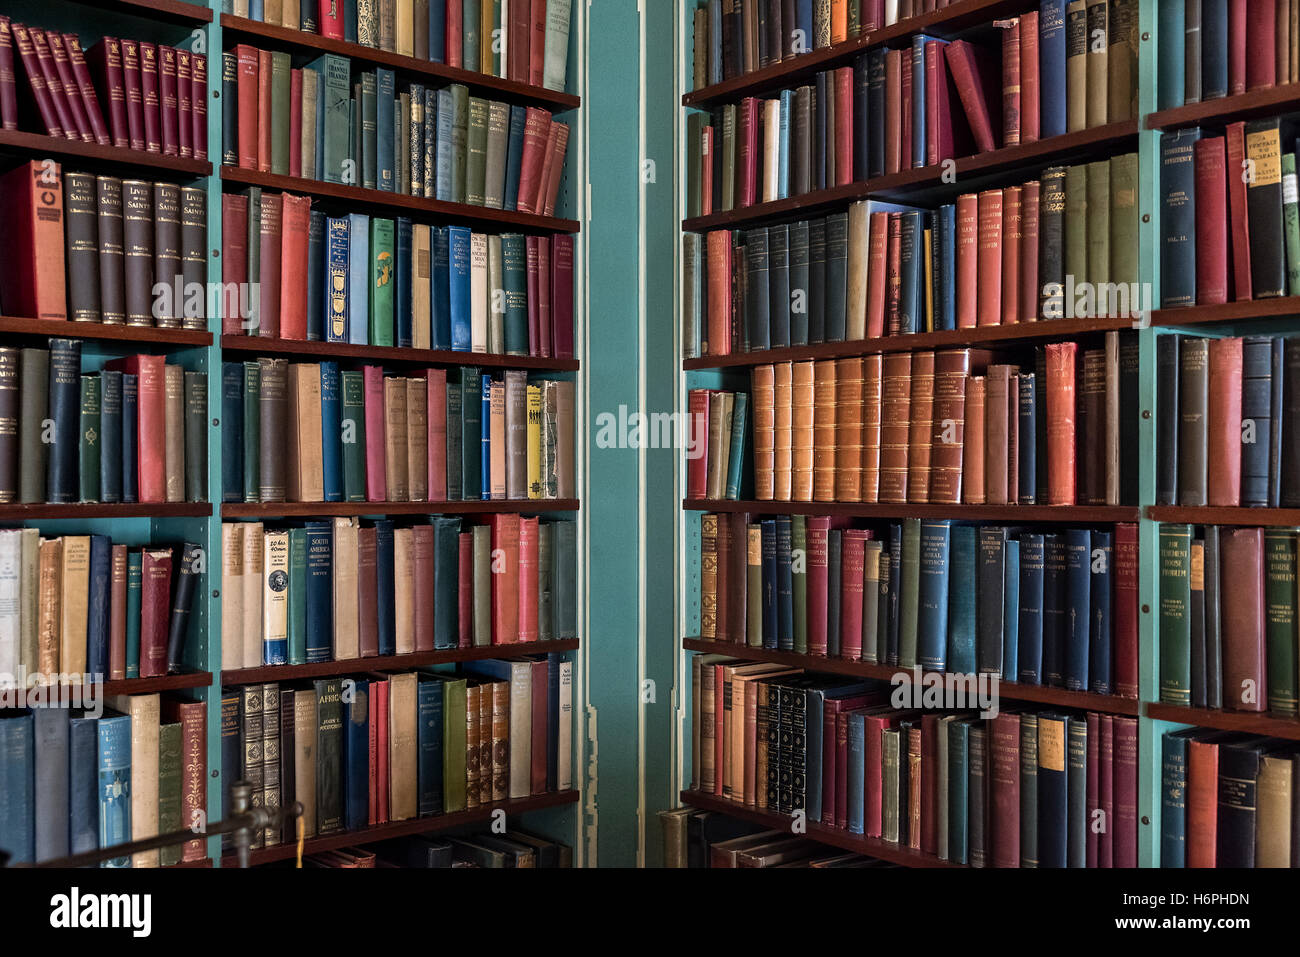 Library of old and rare books. - Stock Image